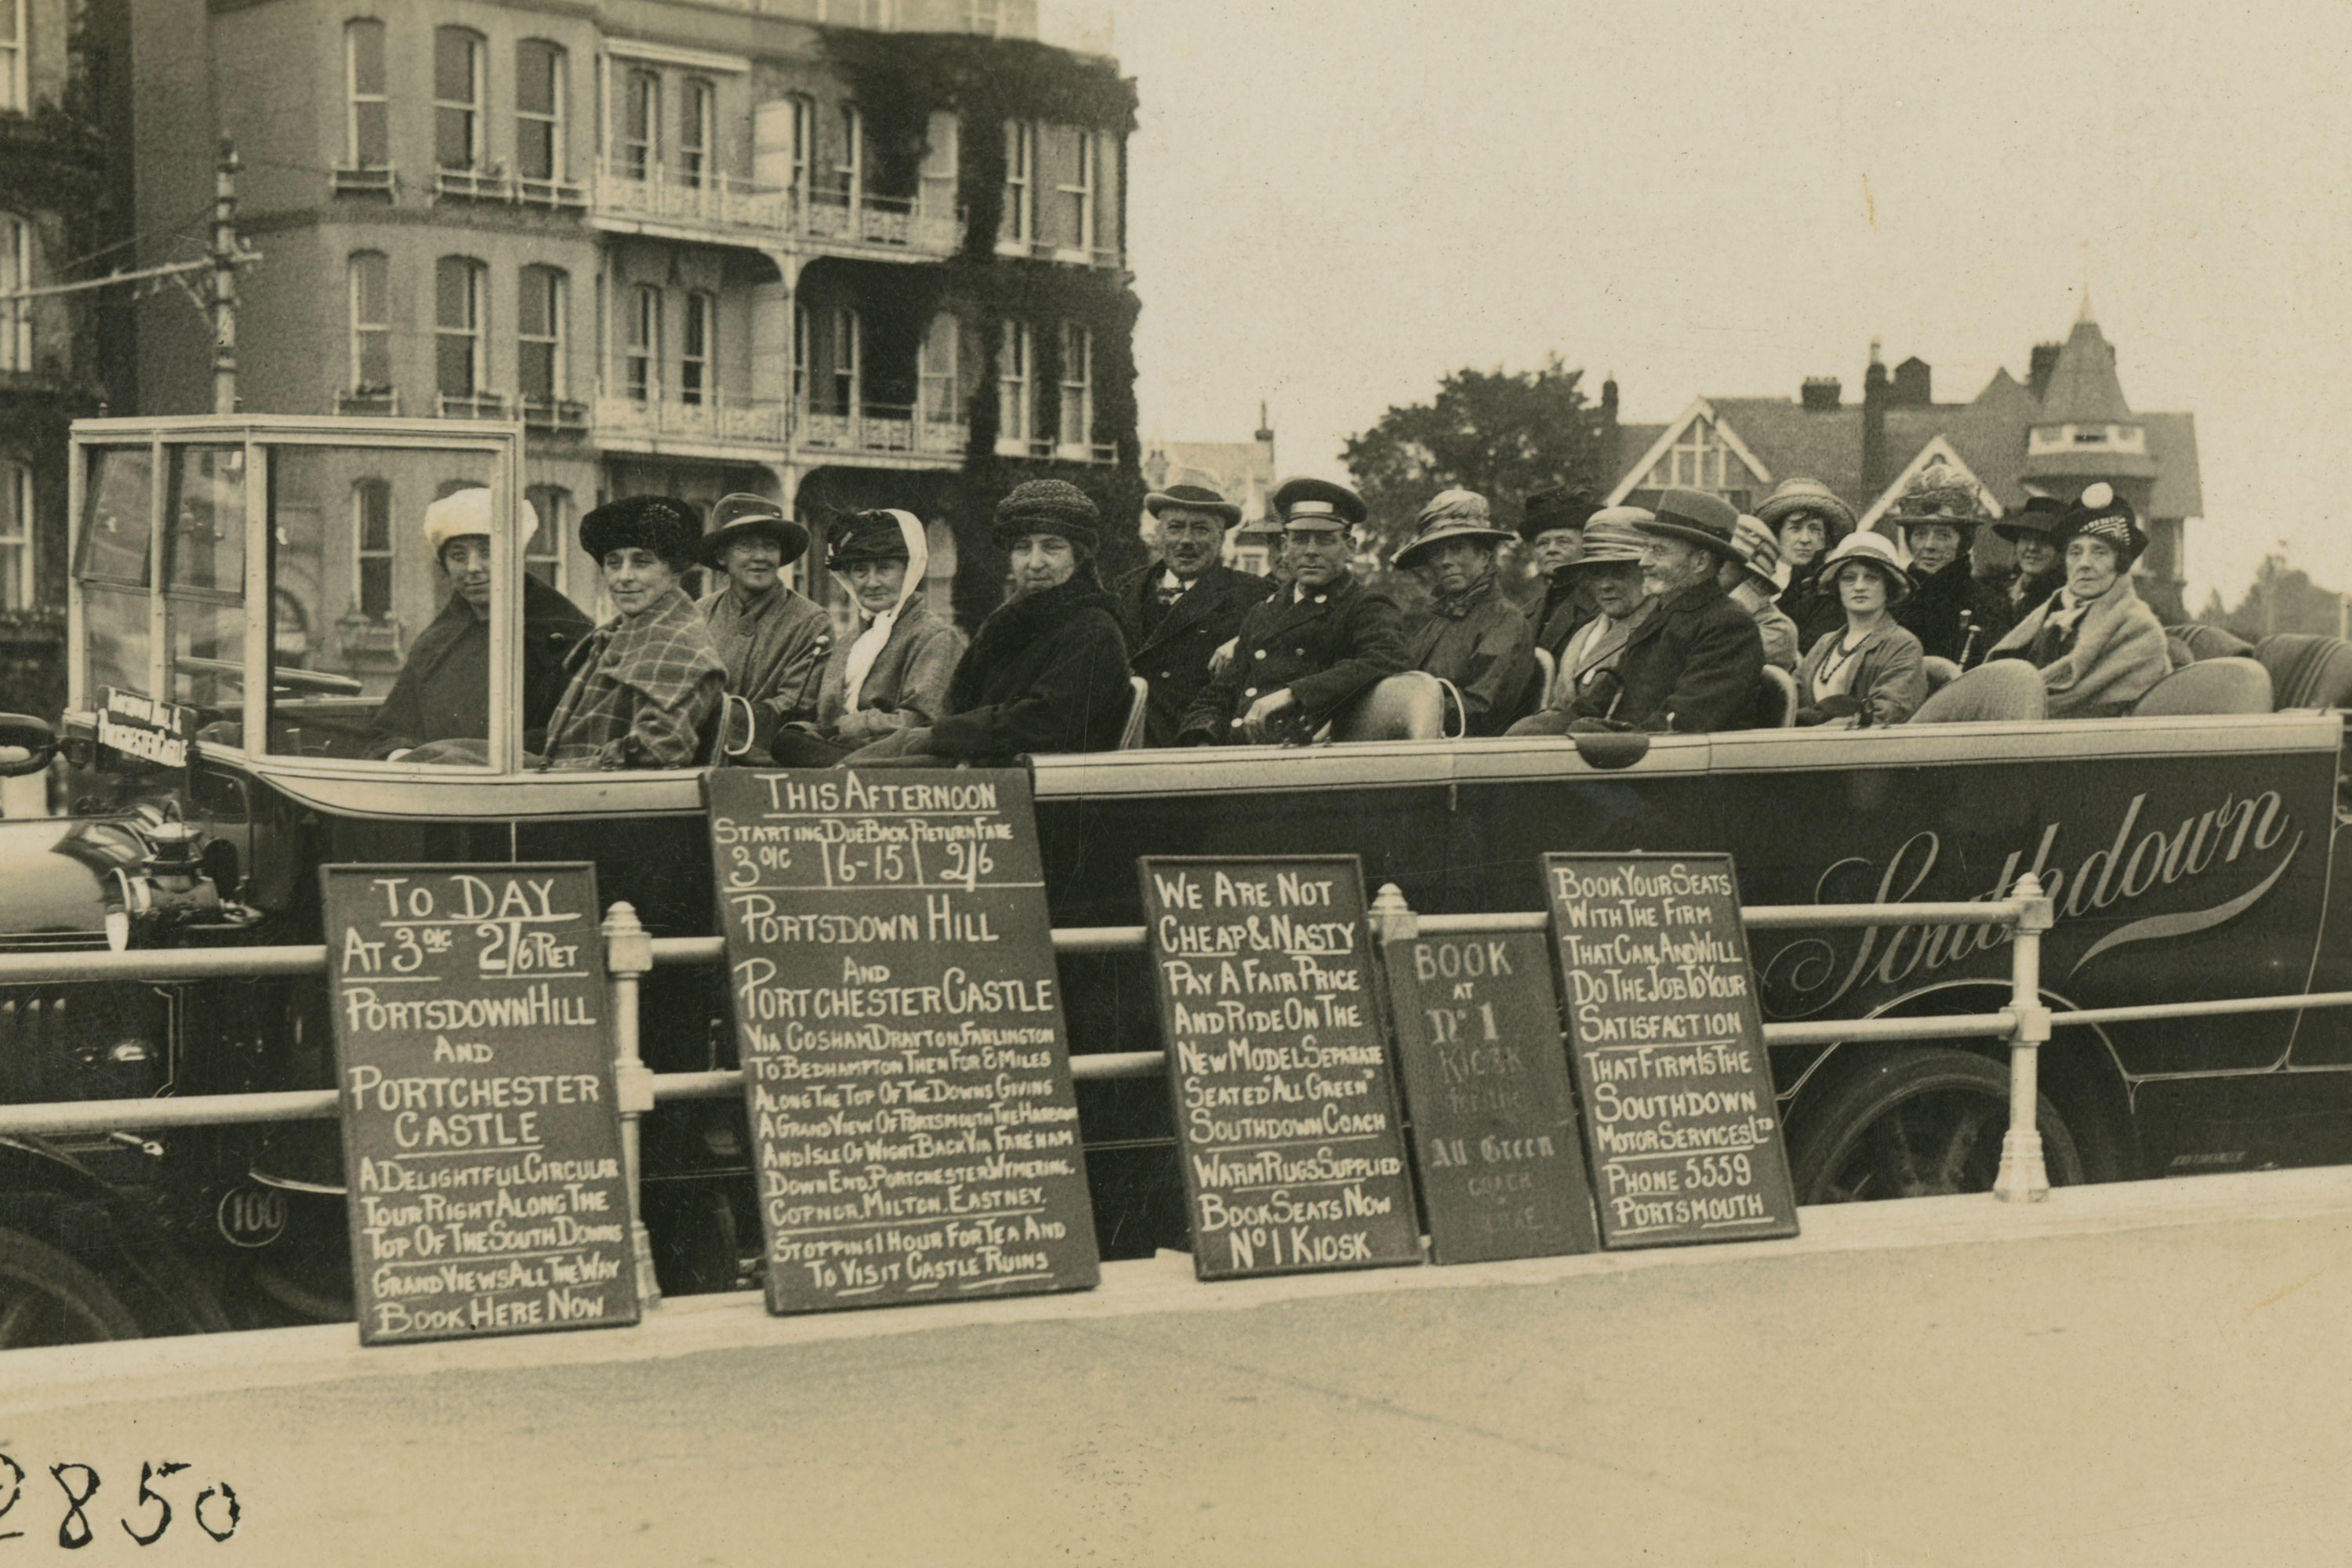 Archive image of people on a charabanc